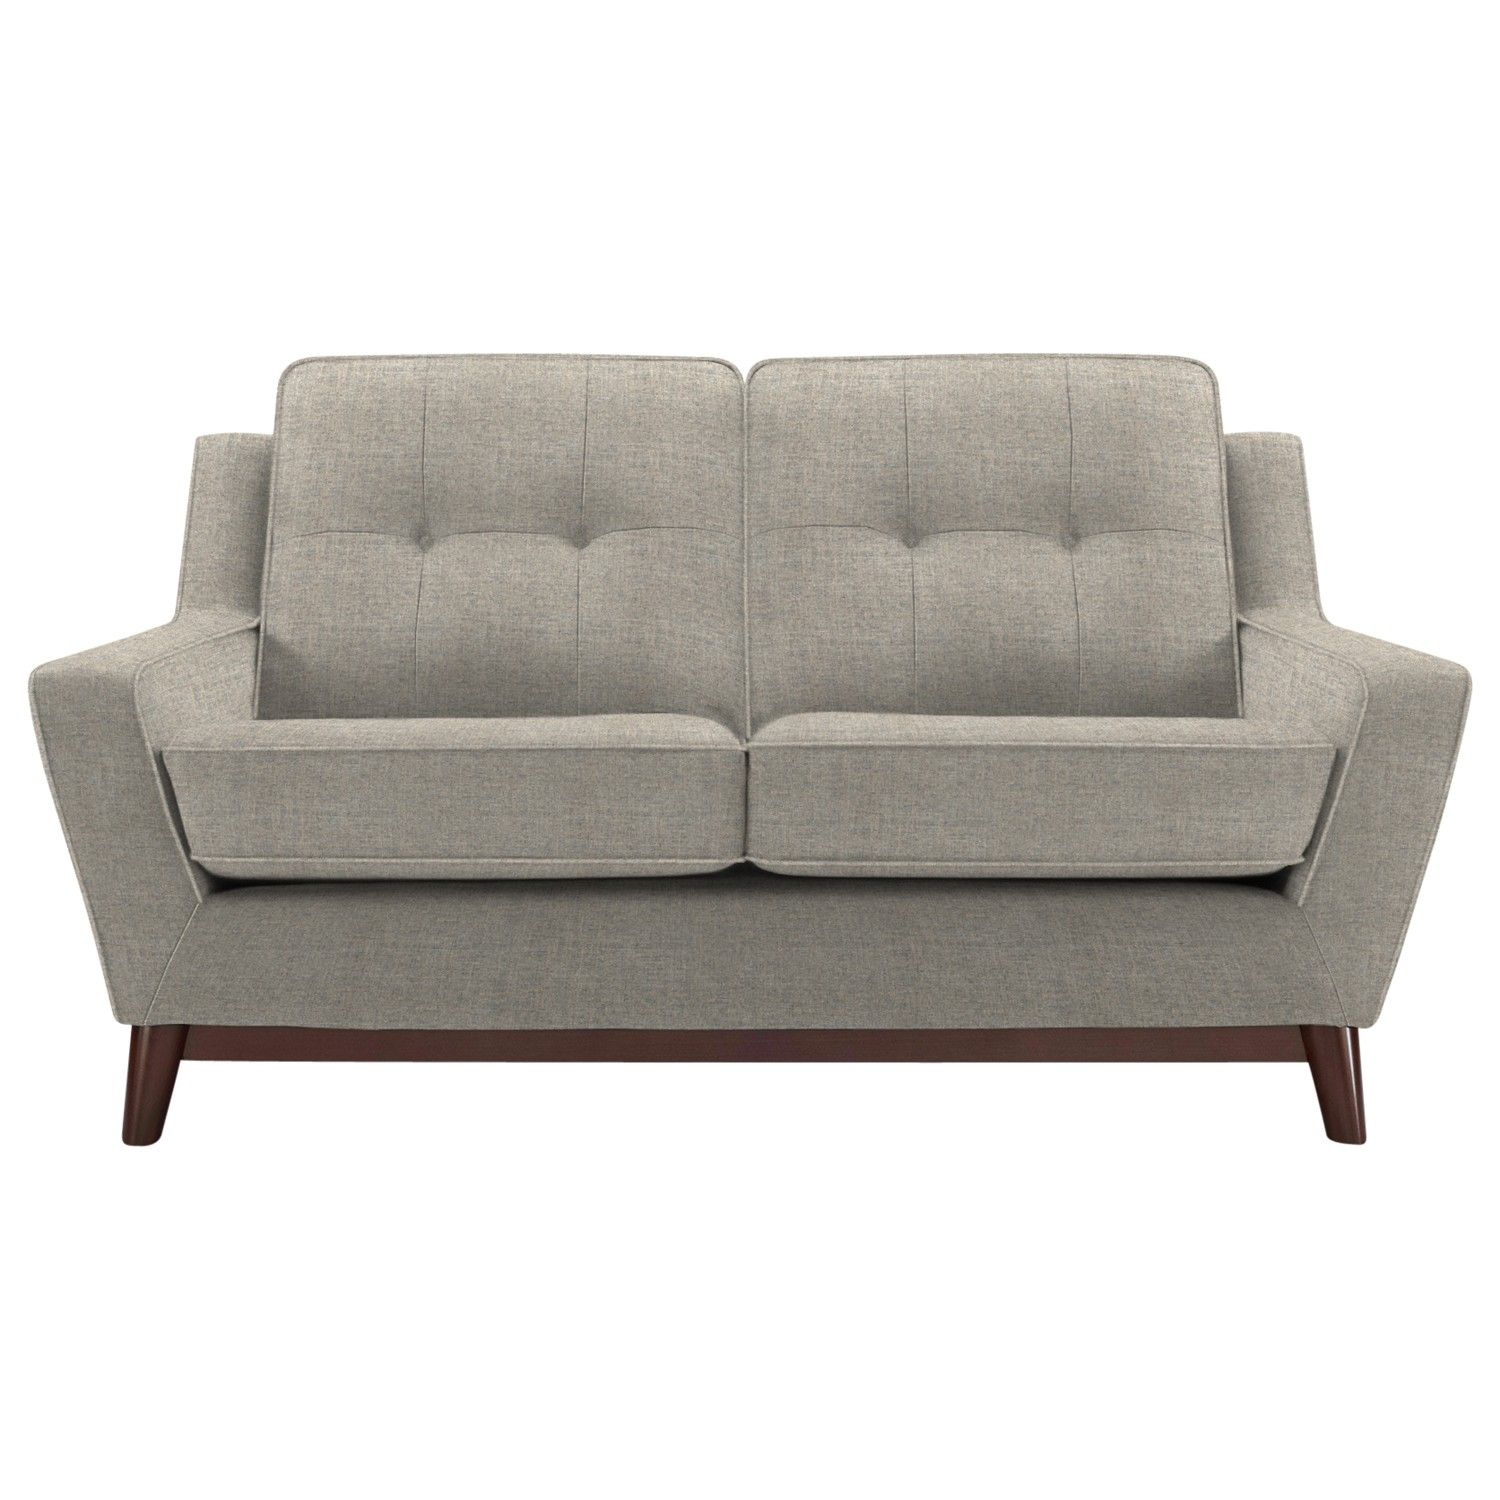 G Plan Vintage The Fifty Three Small 2 Seater Sofa Marl Grey Small Sofa 2 Seater Sofa Sofa